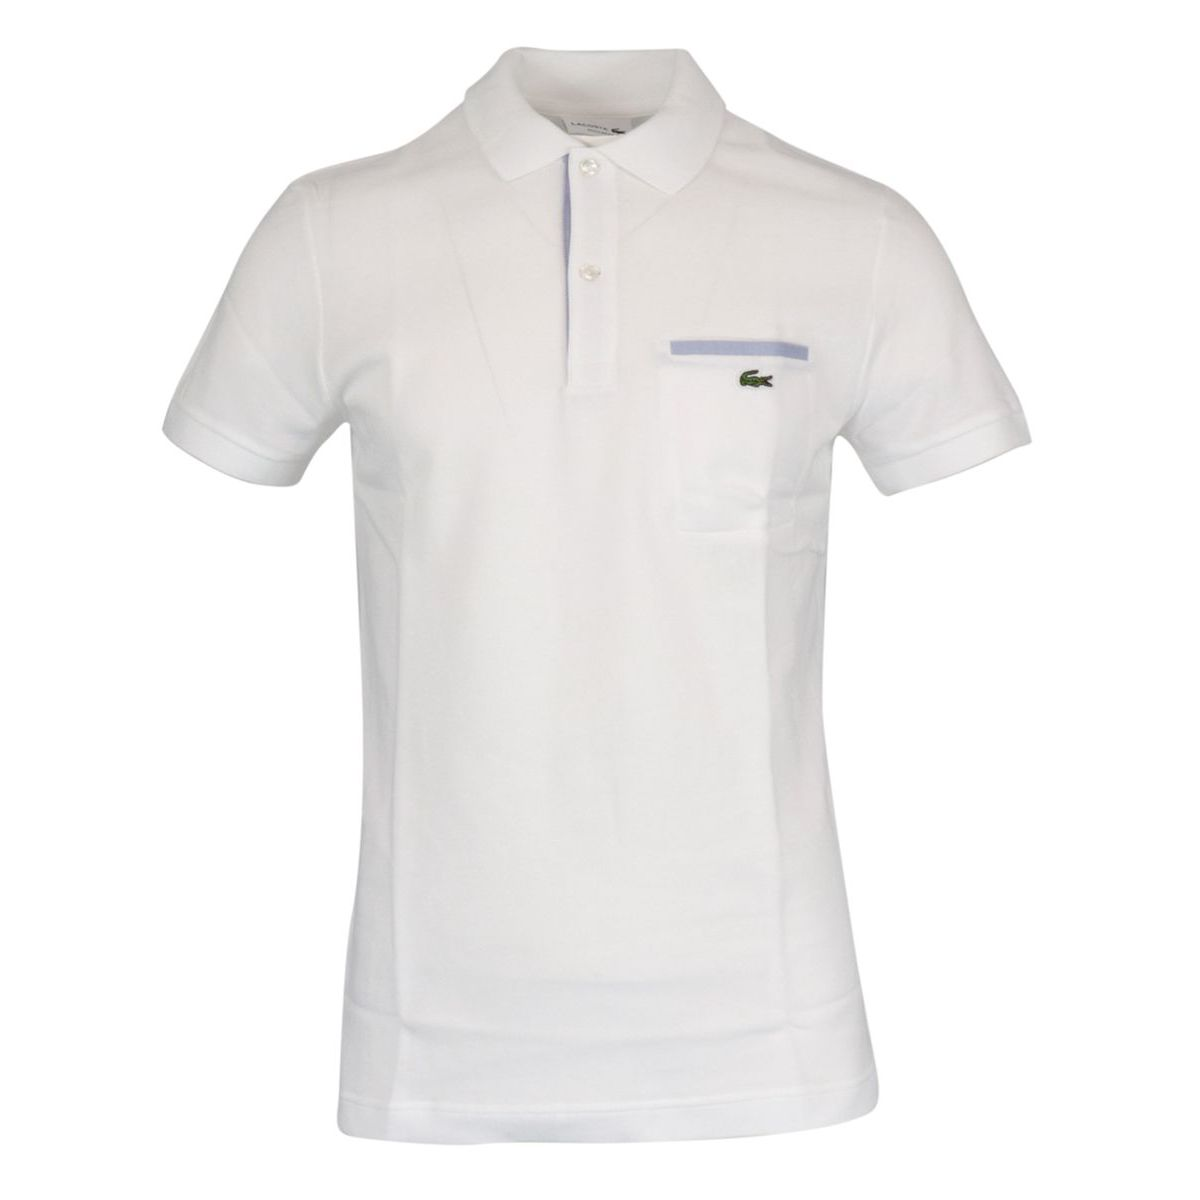 Regular Fit polo shirt in cotton pique with contrasting details White Lacoste